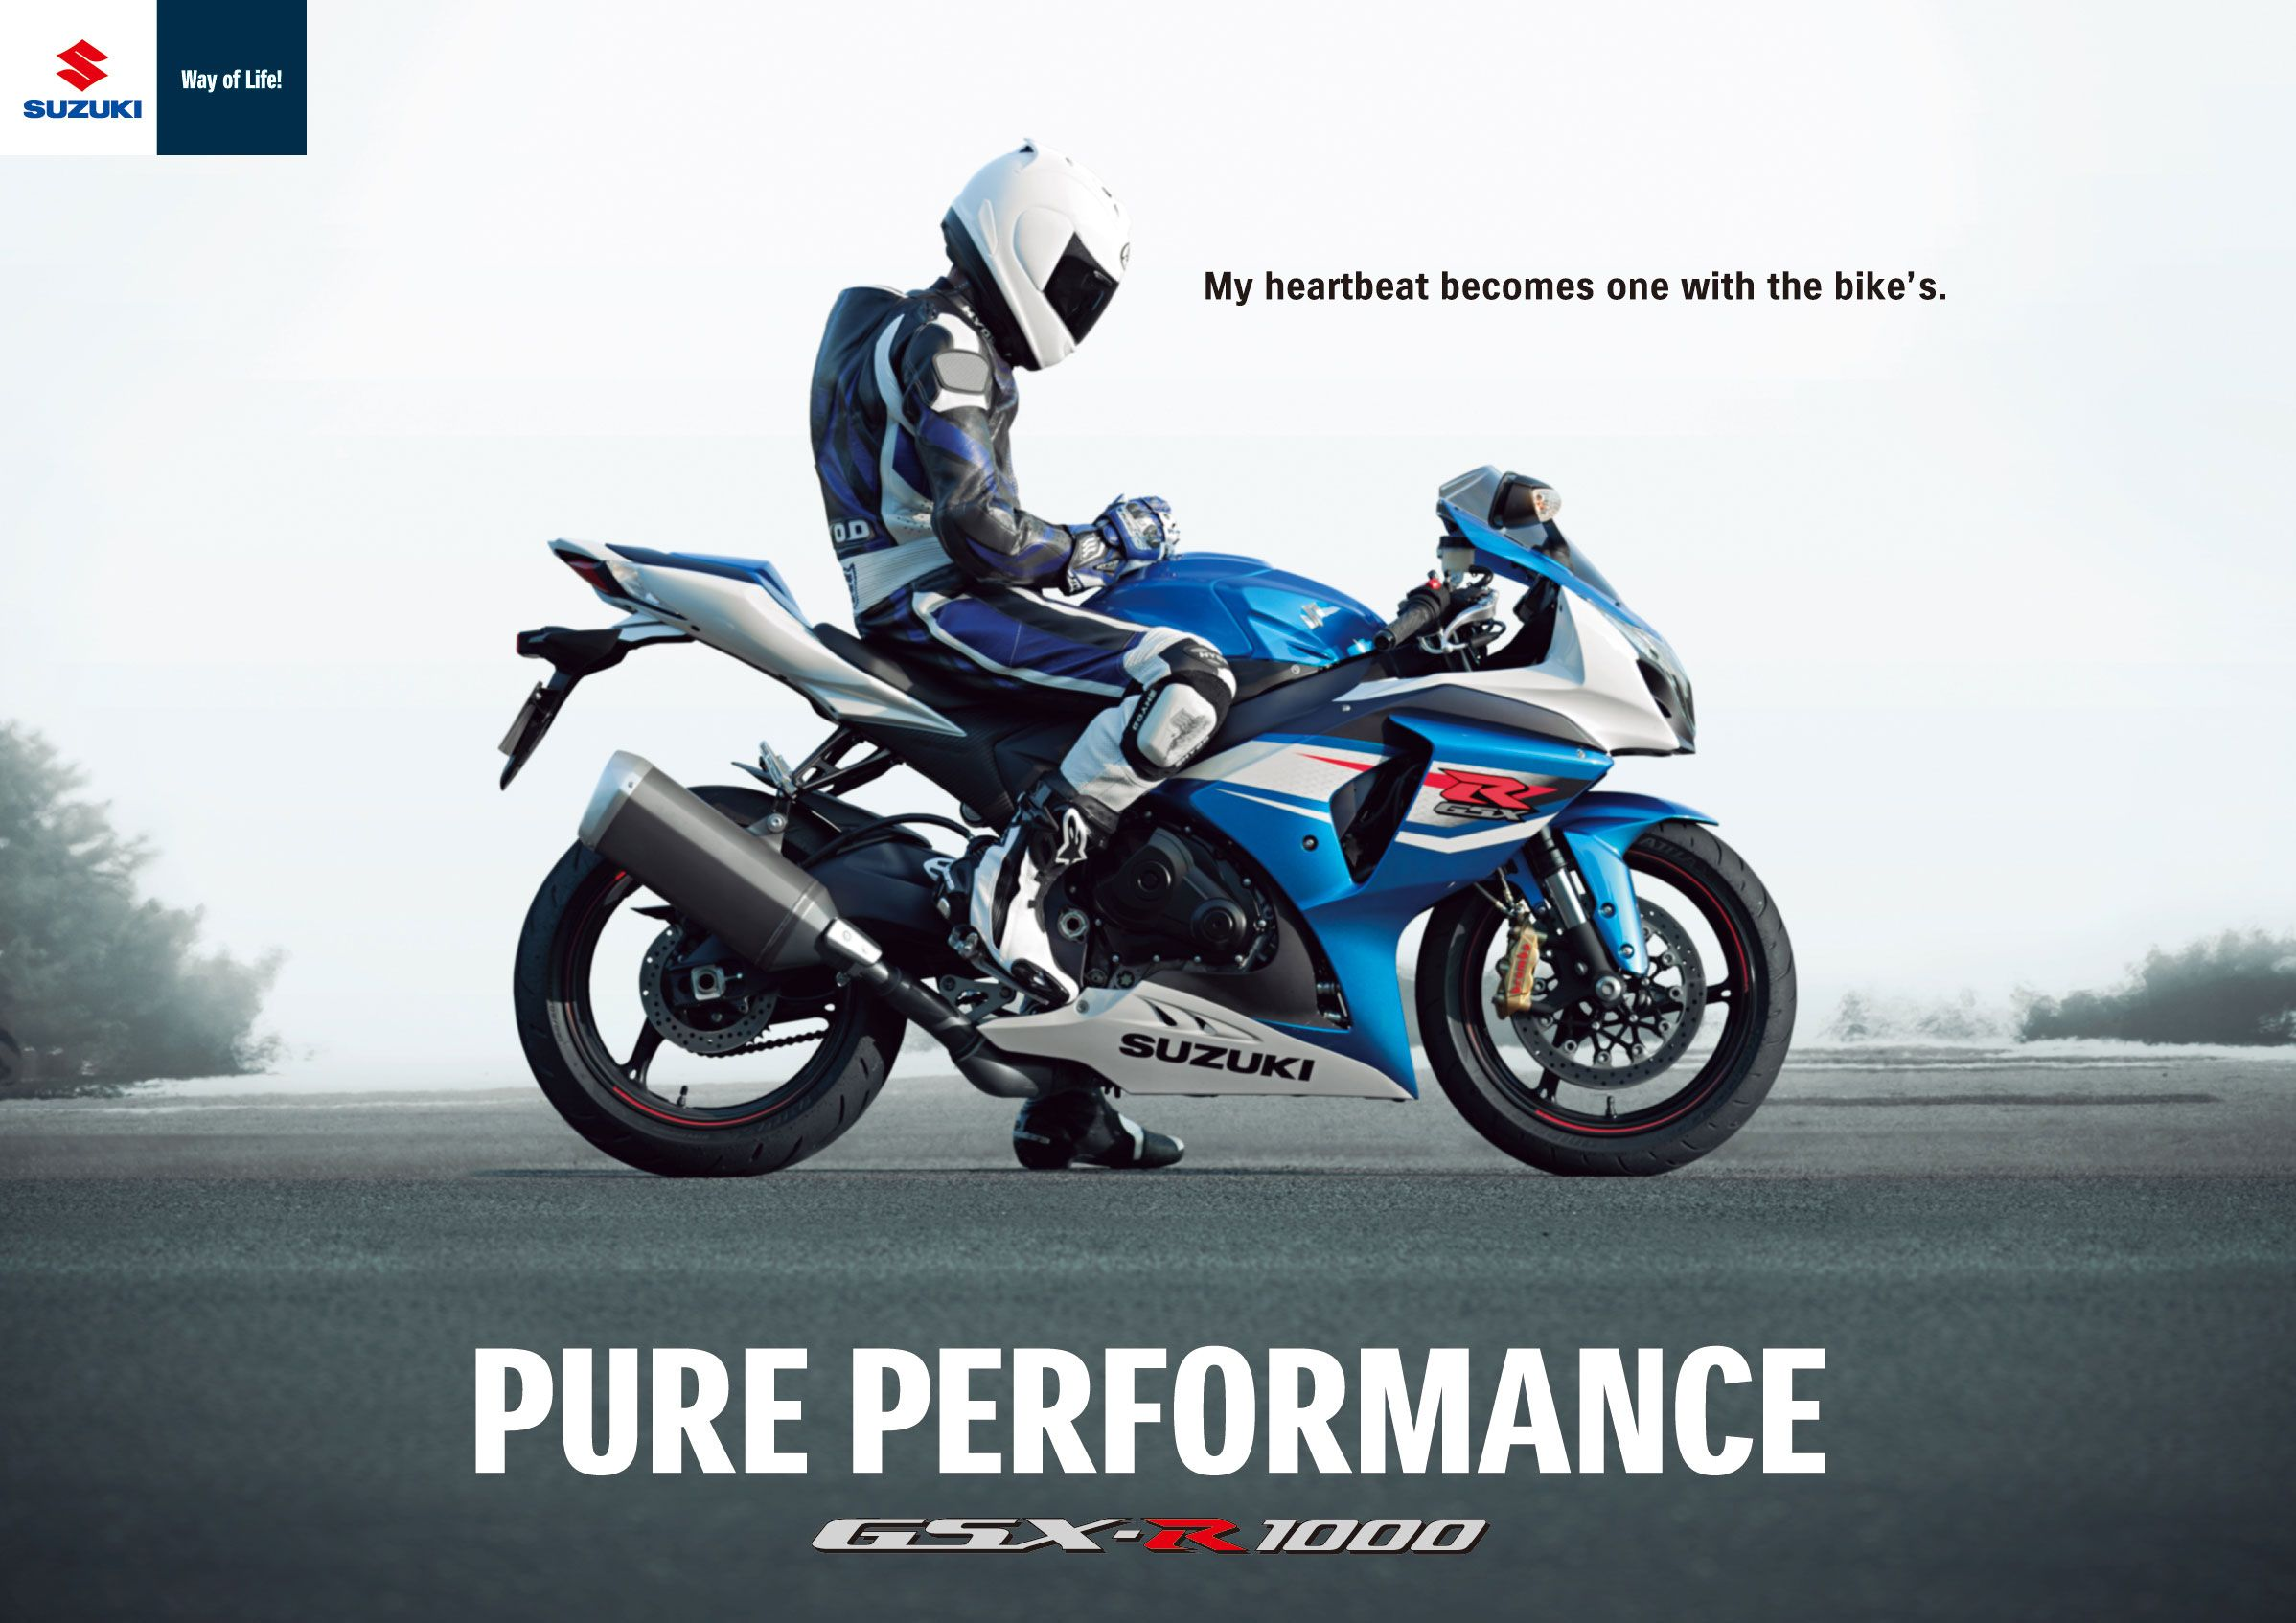 Gsxr 1000 pure performance